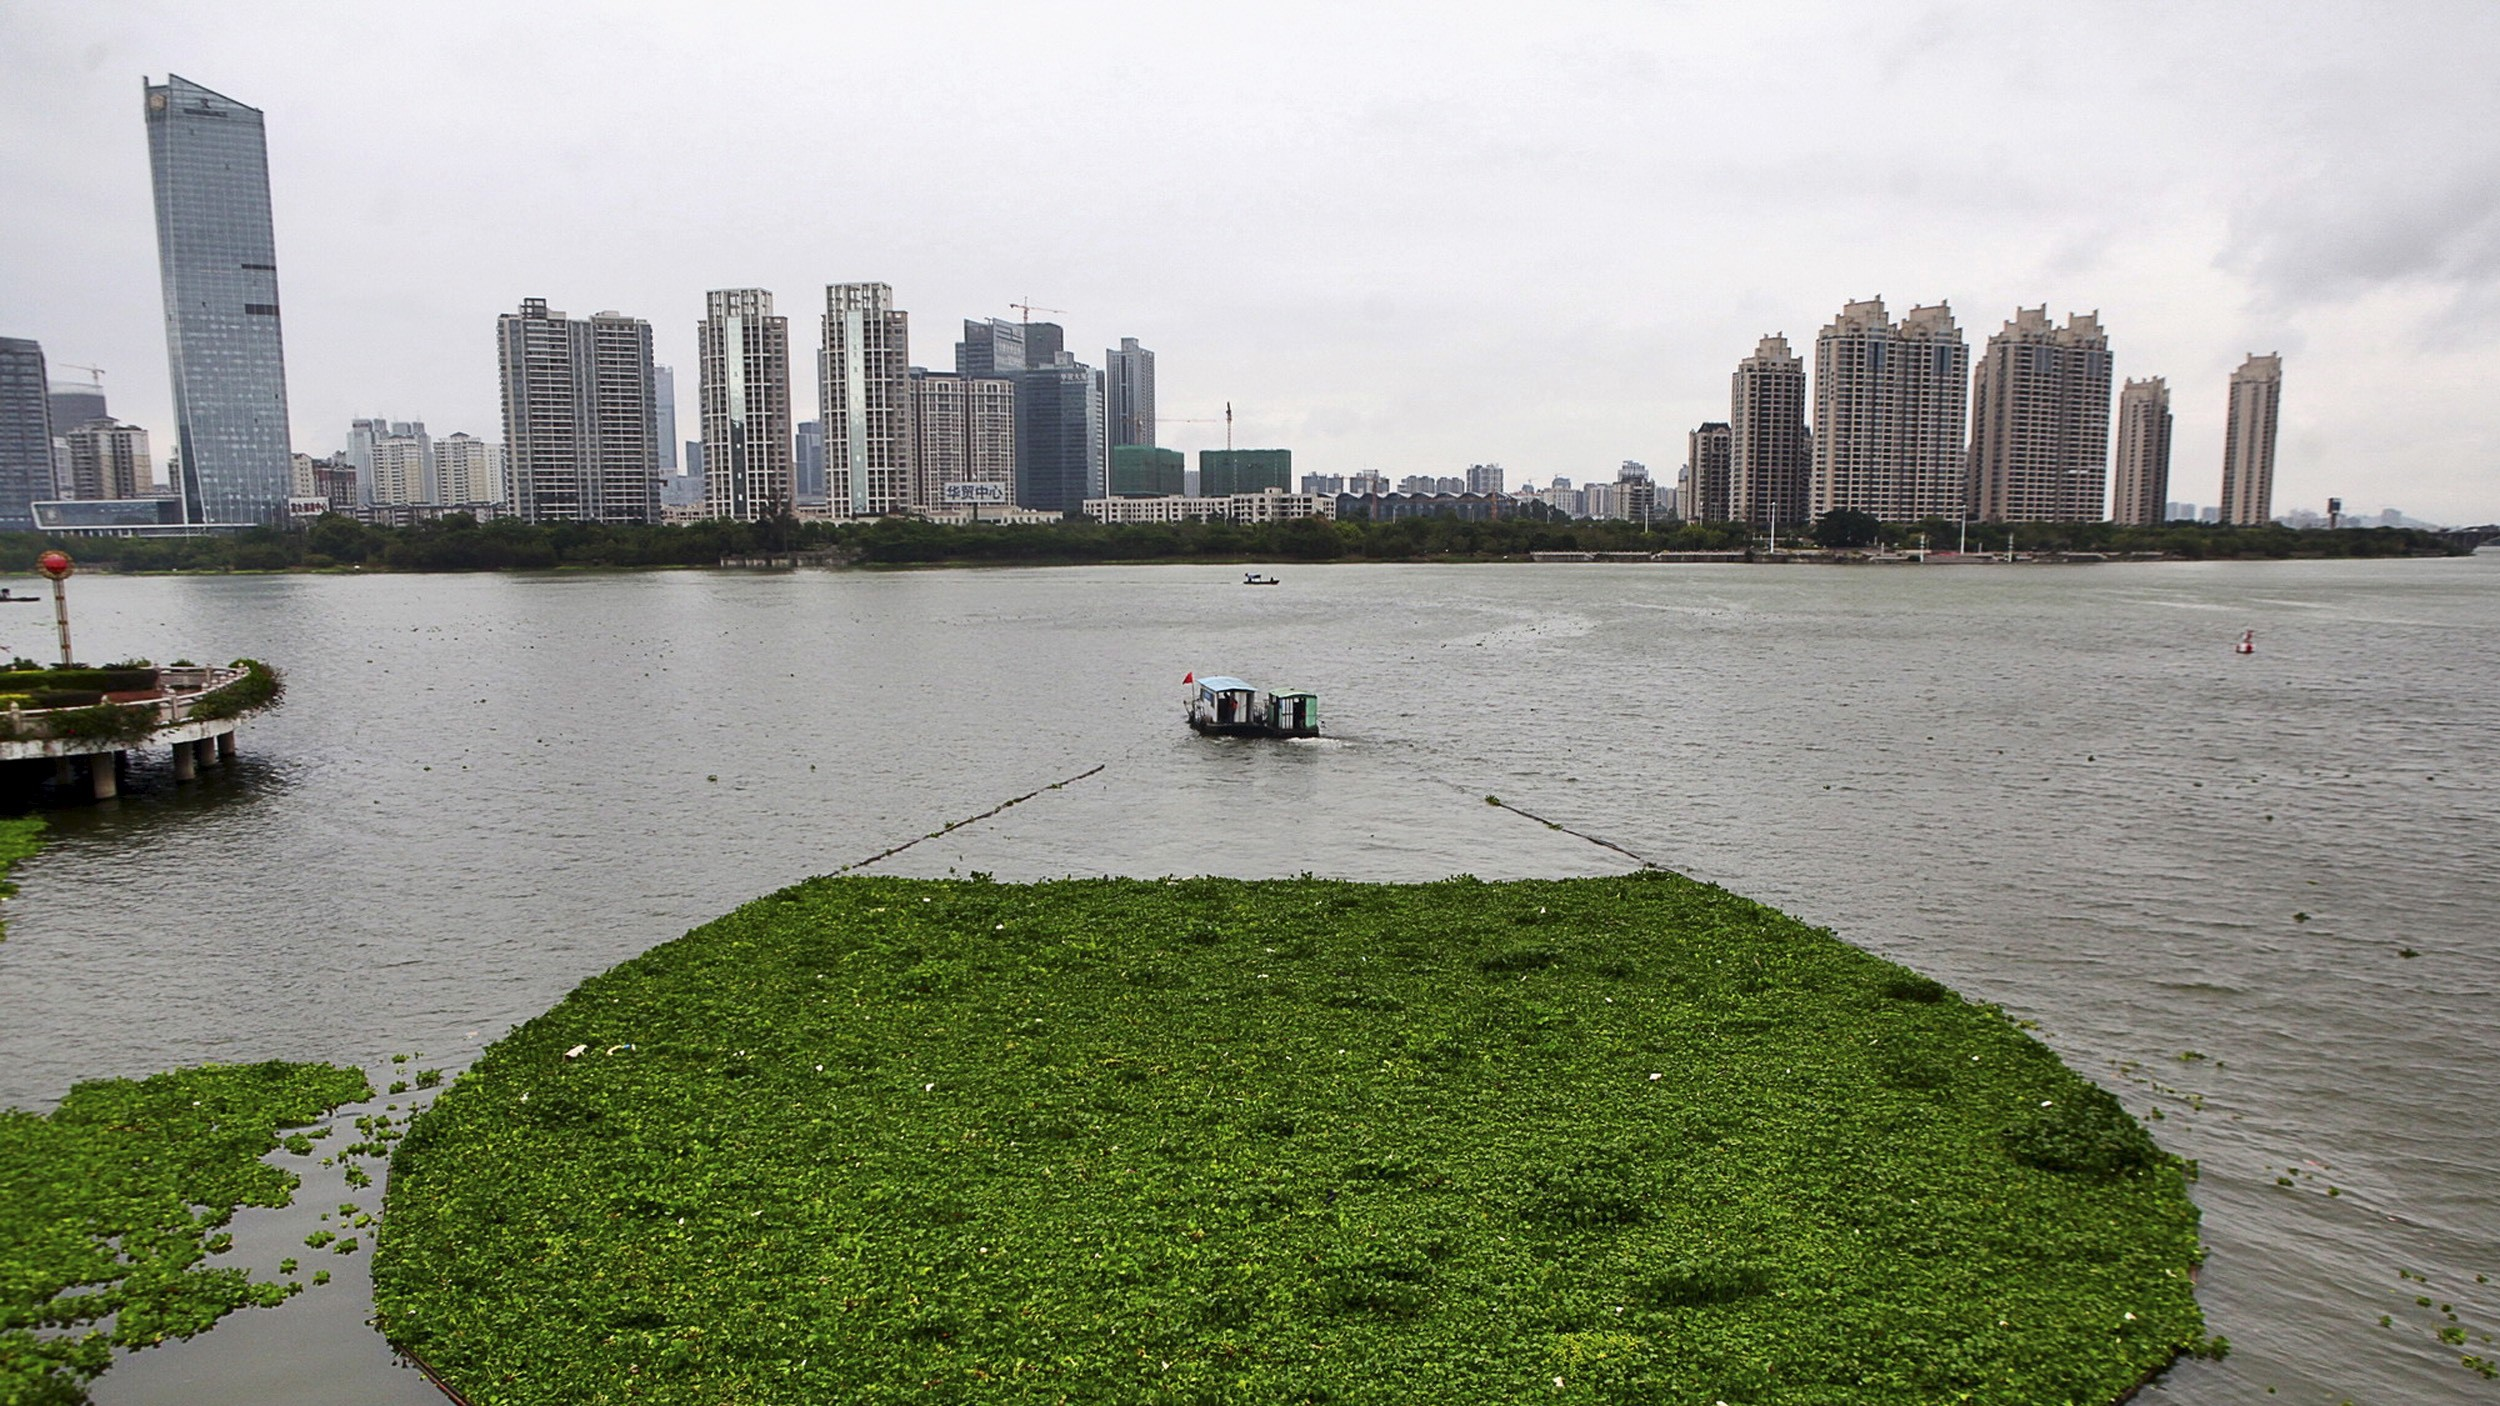 A boat pulls away water lettuce as it cleans up the surface of Xizhi River, in Huizhou, Guangdong province April 8, 2015. Picture taken April 8, 2015. REUTERS/Stringer  CHINA OUT. NO COMMERCIAL OR EDITORIAL SALES IN CHINA       TPX IMAGES OF THE DAY      - RTR4WR19